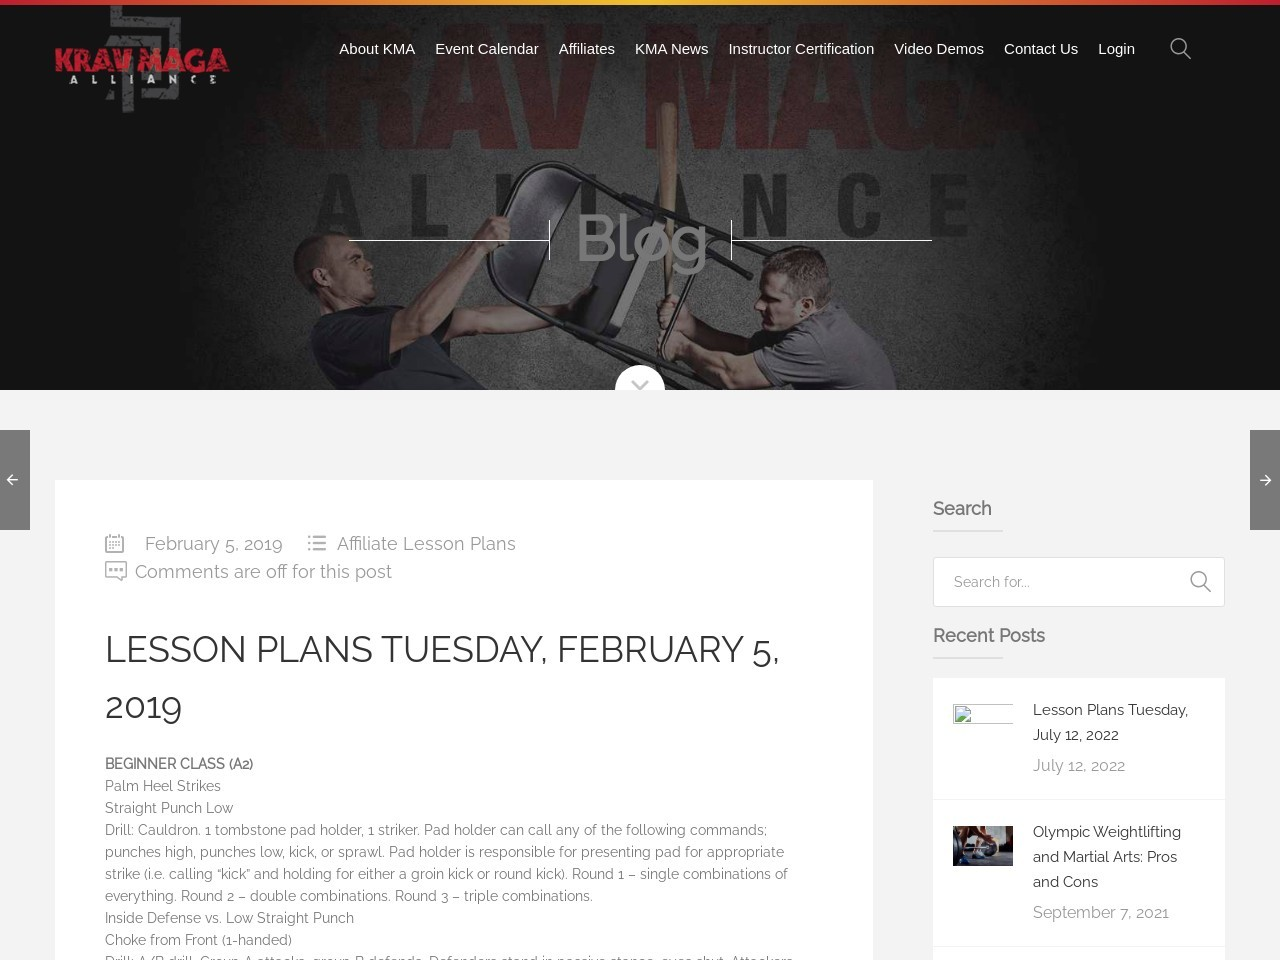 Lesson Plans Tuesday, February 5, 2019